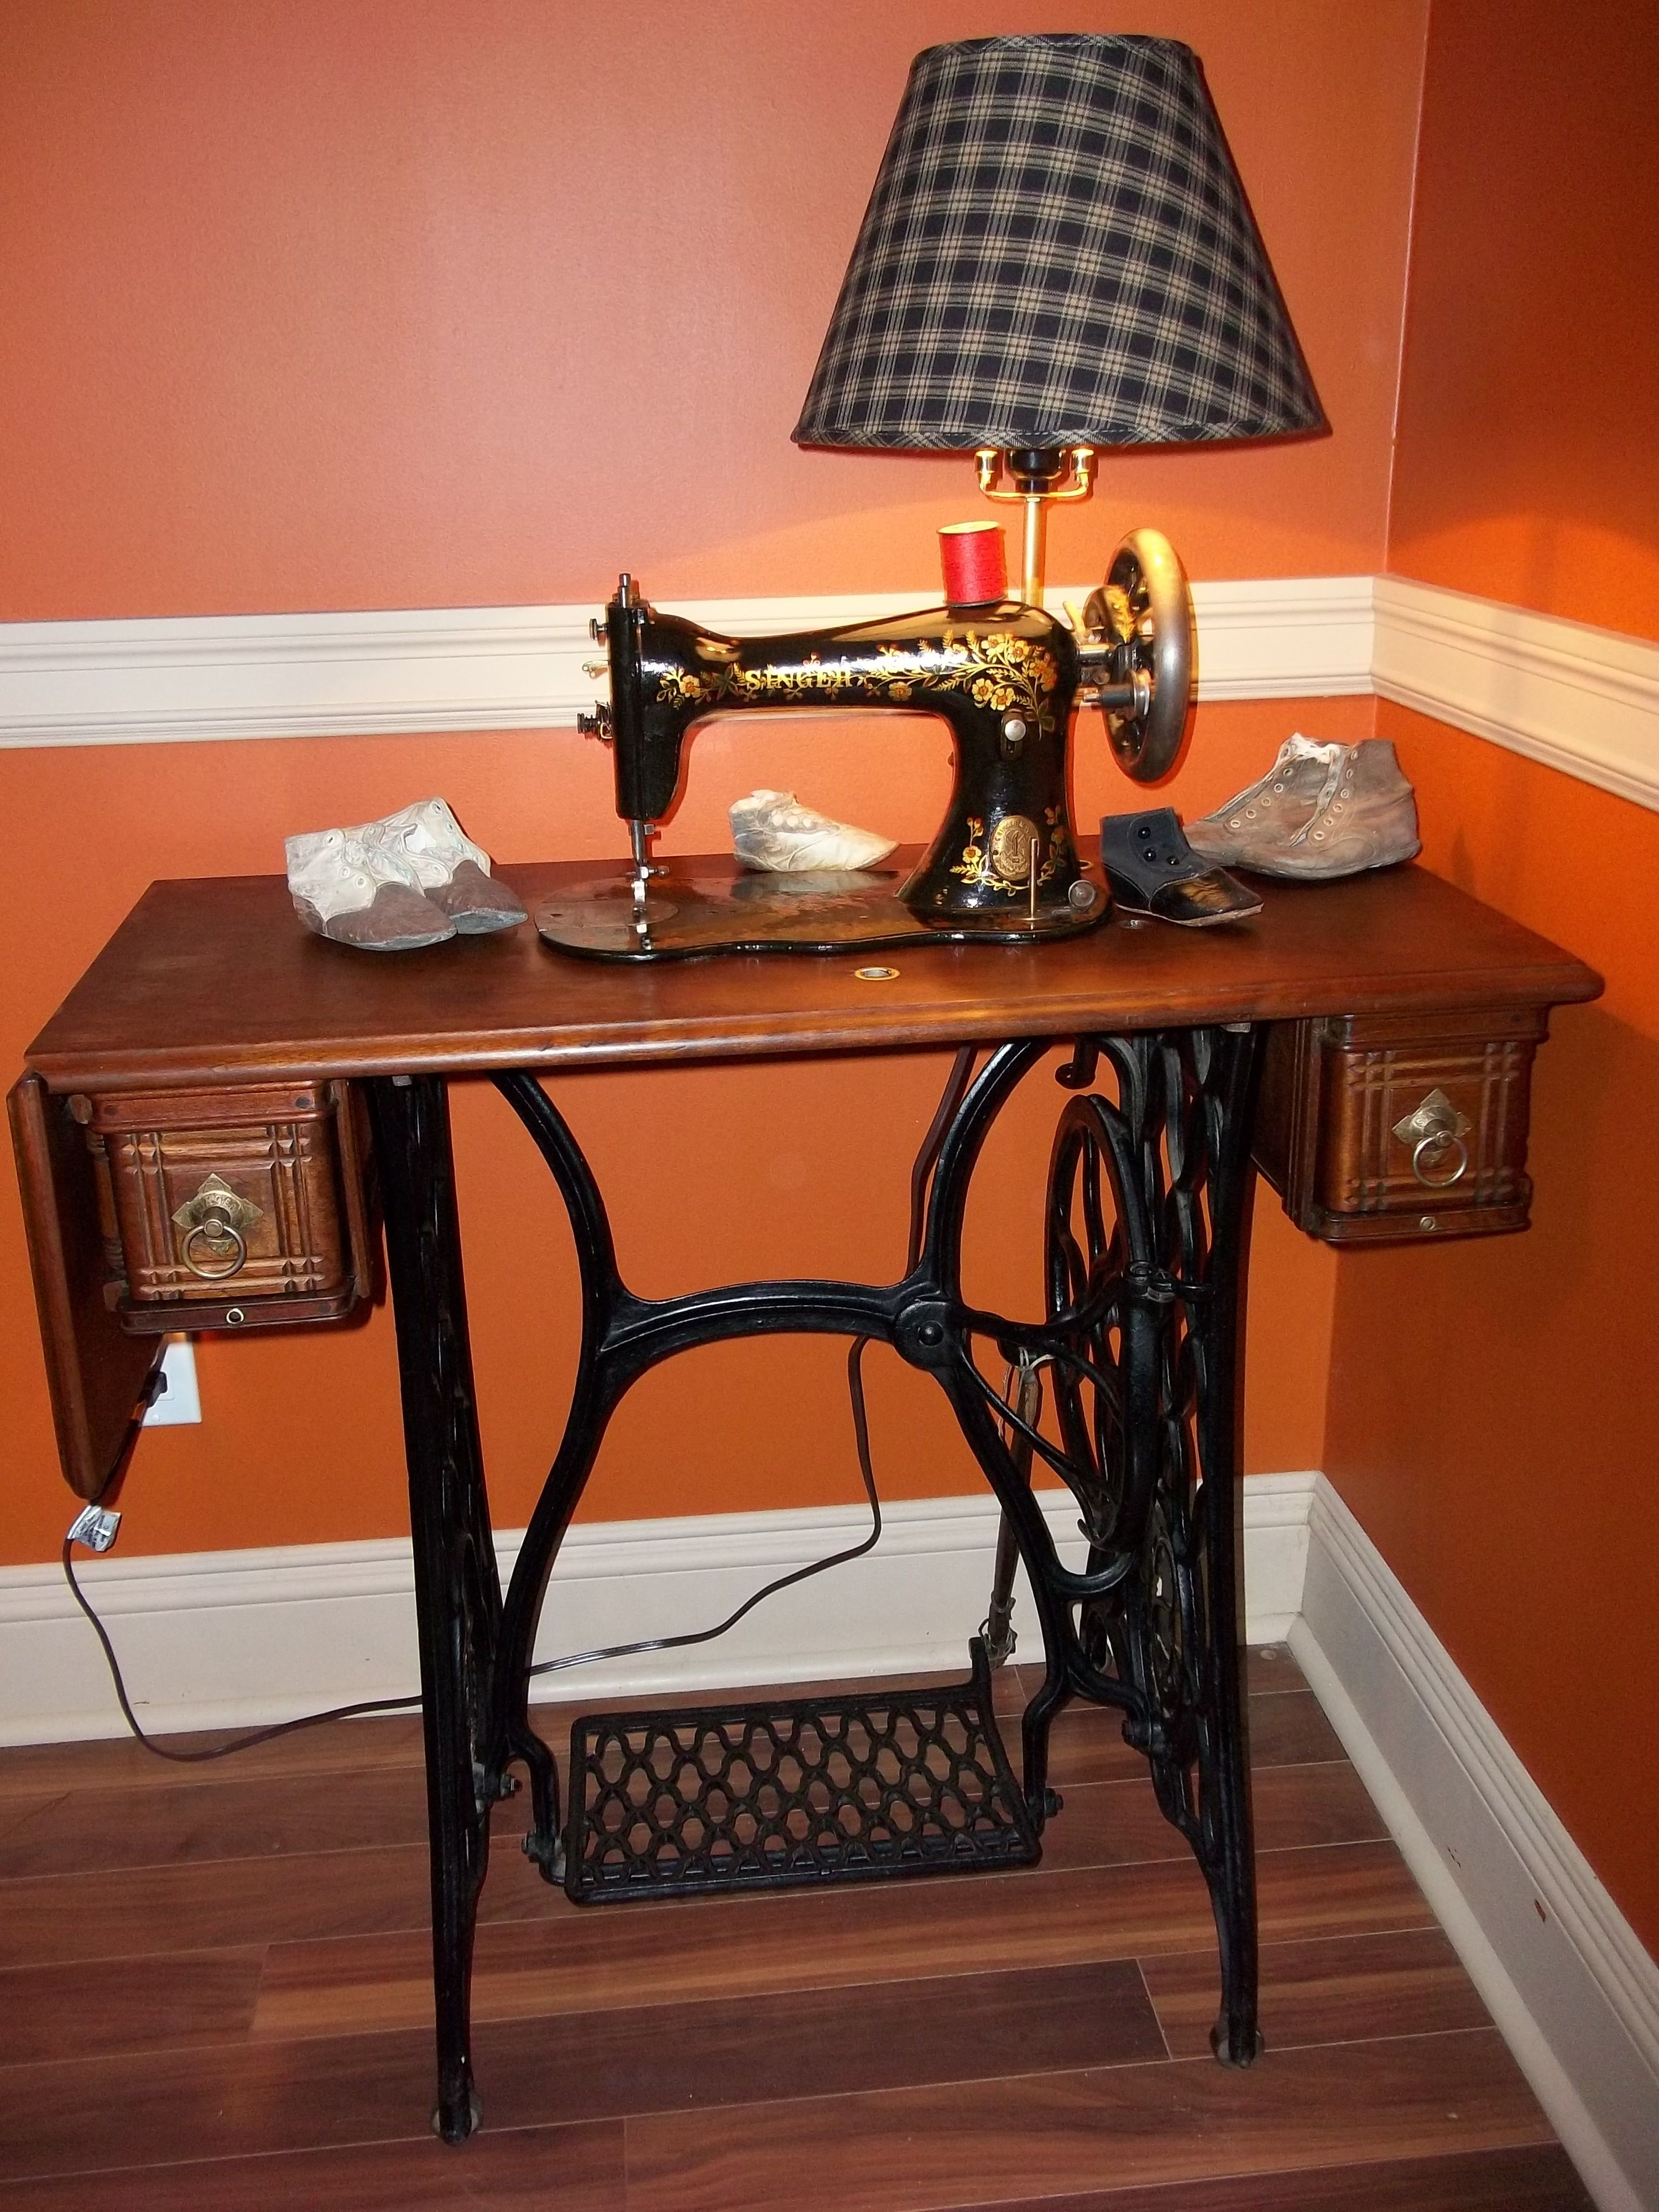 Repurposed Antique Sewing Machine Table Into A Table Lamp